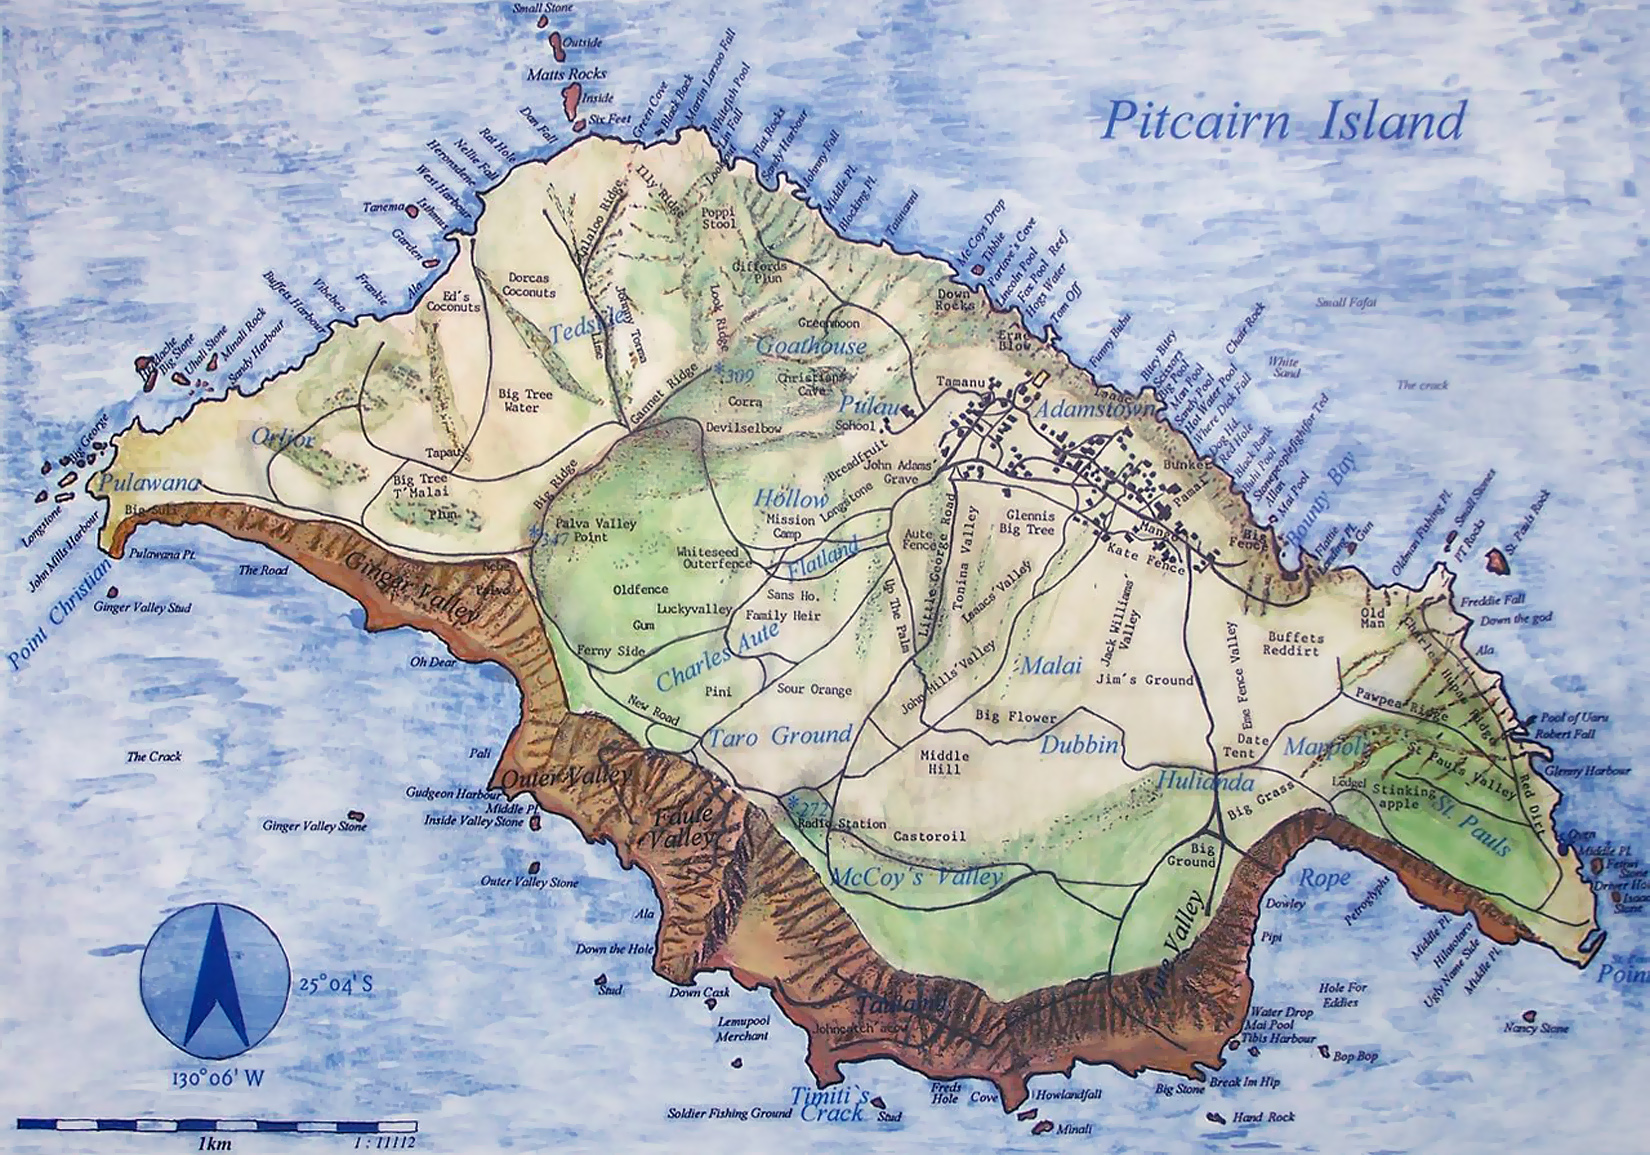 Large map of Pitcairn Island with relief roads and other marks